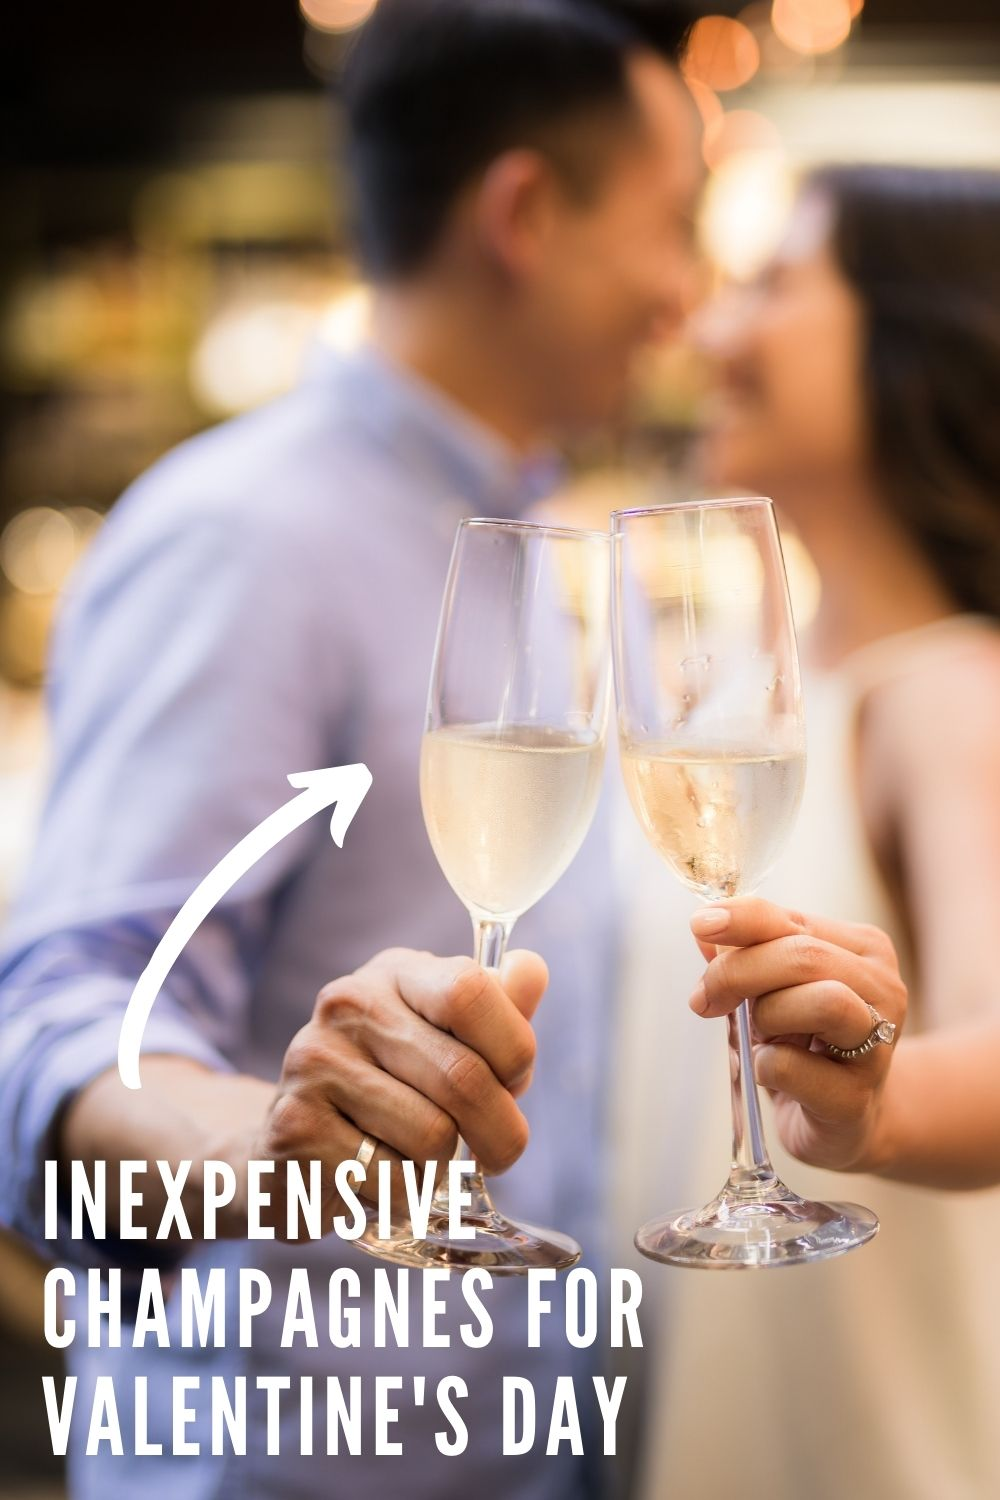 Inexpensive Champagne for Valentine's Day graphic